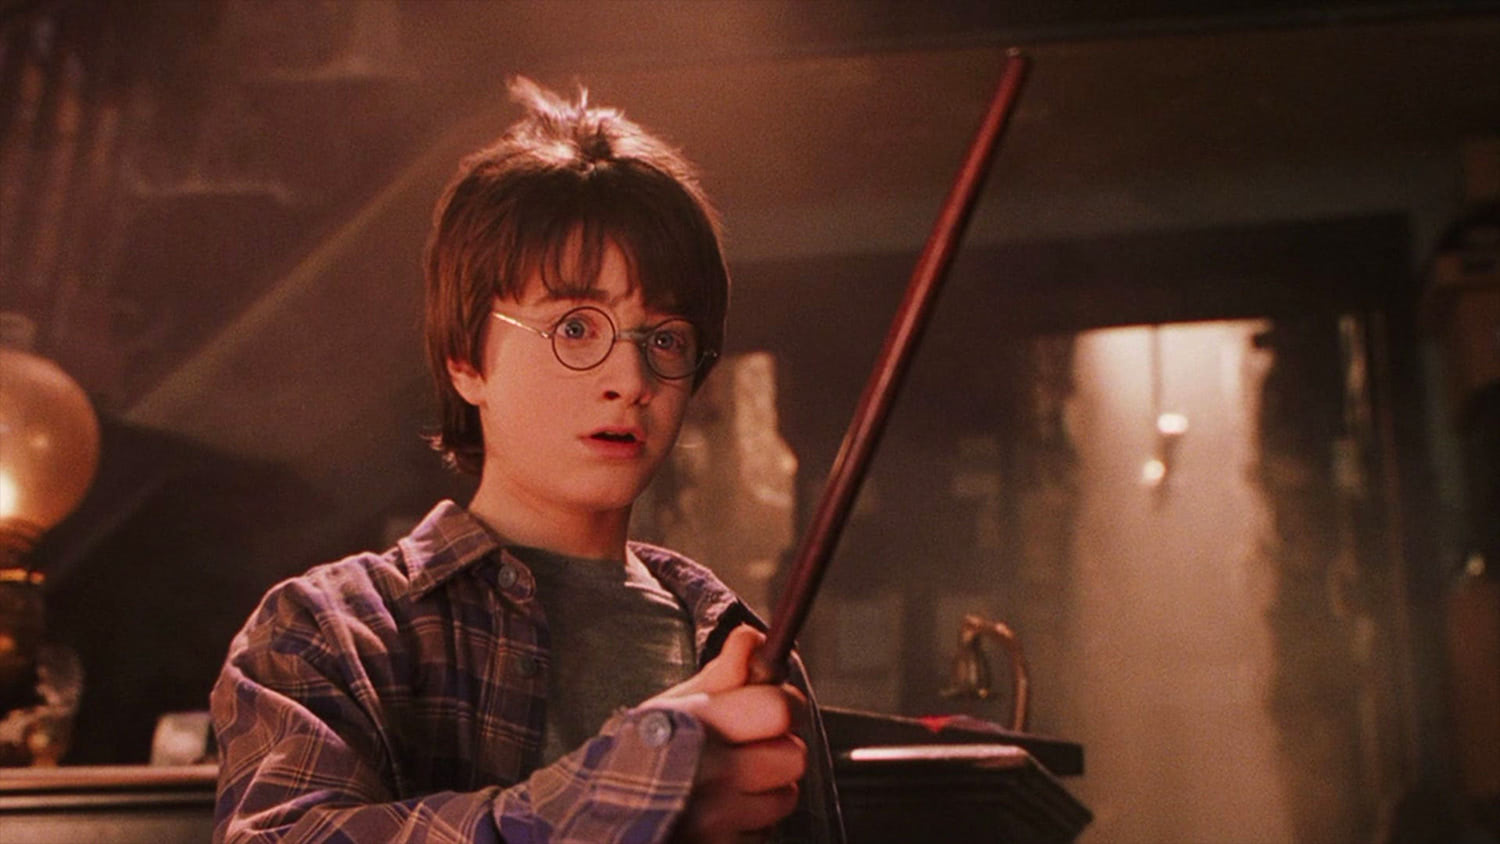 Harry tries out his wand